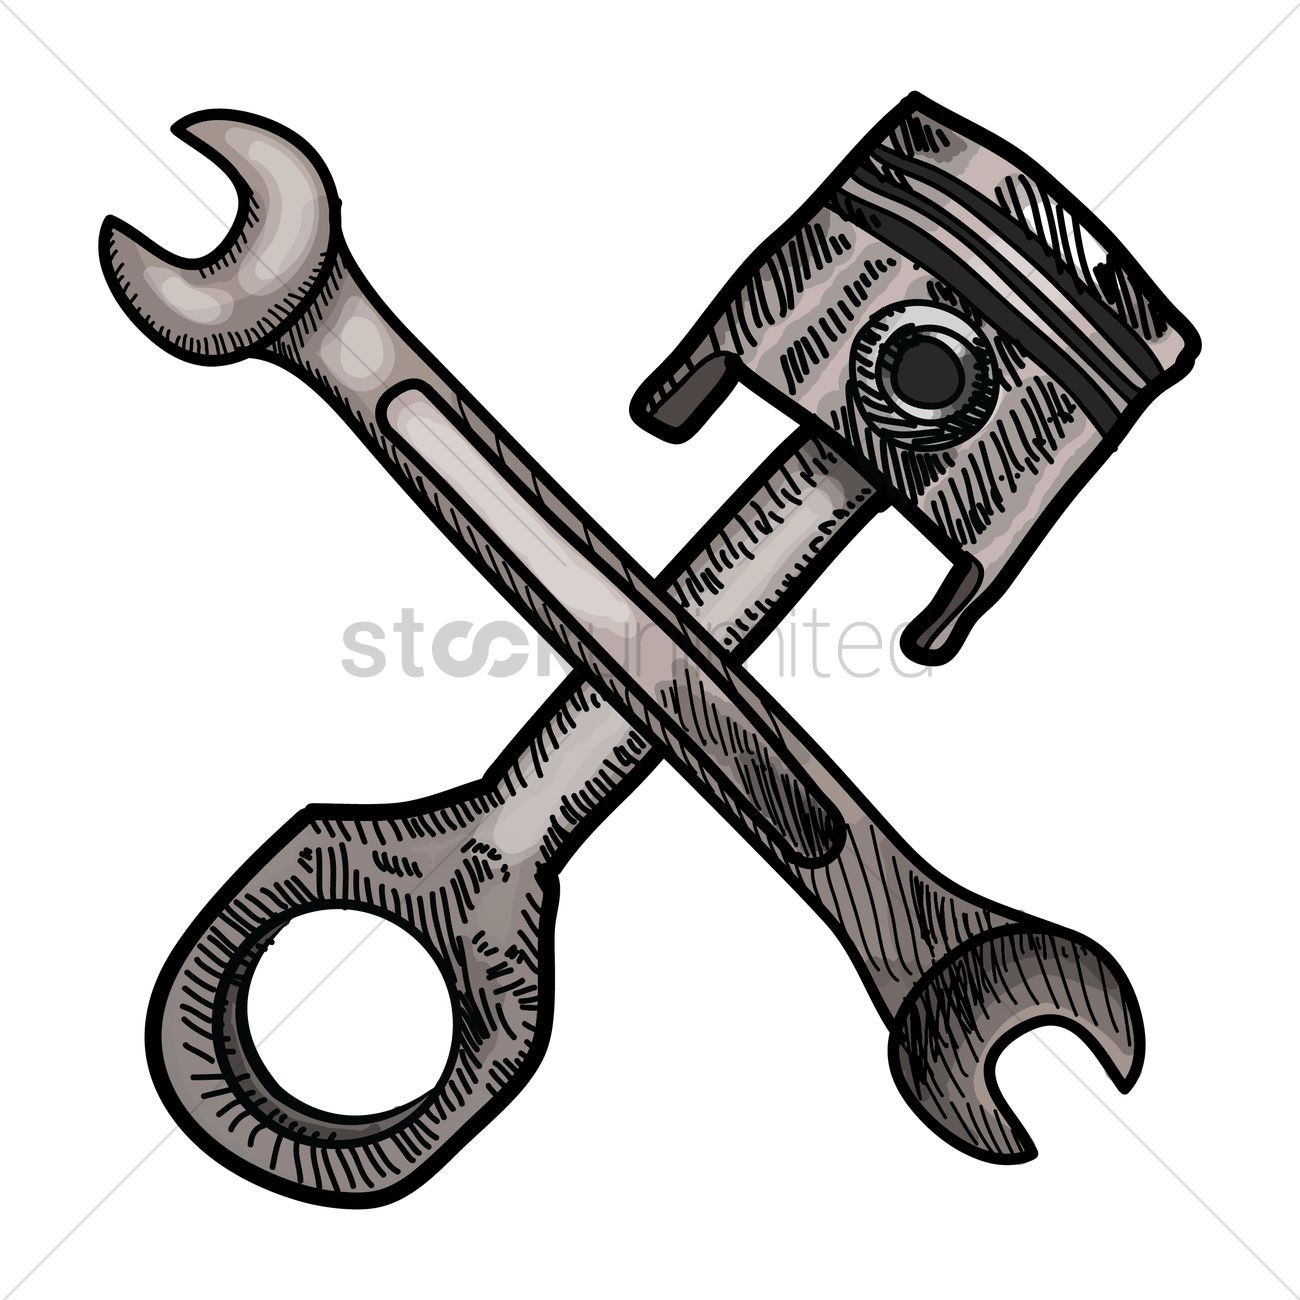 1300x1300 Piston And Spanner Vector Image